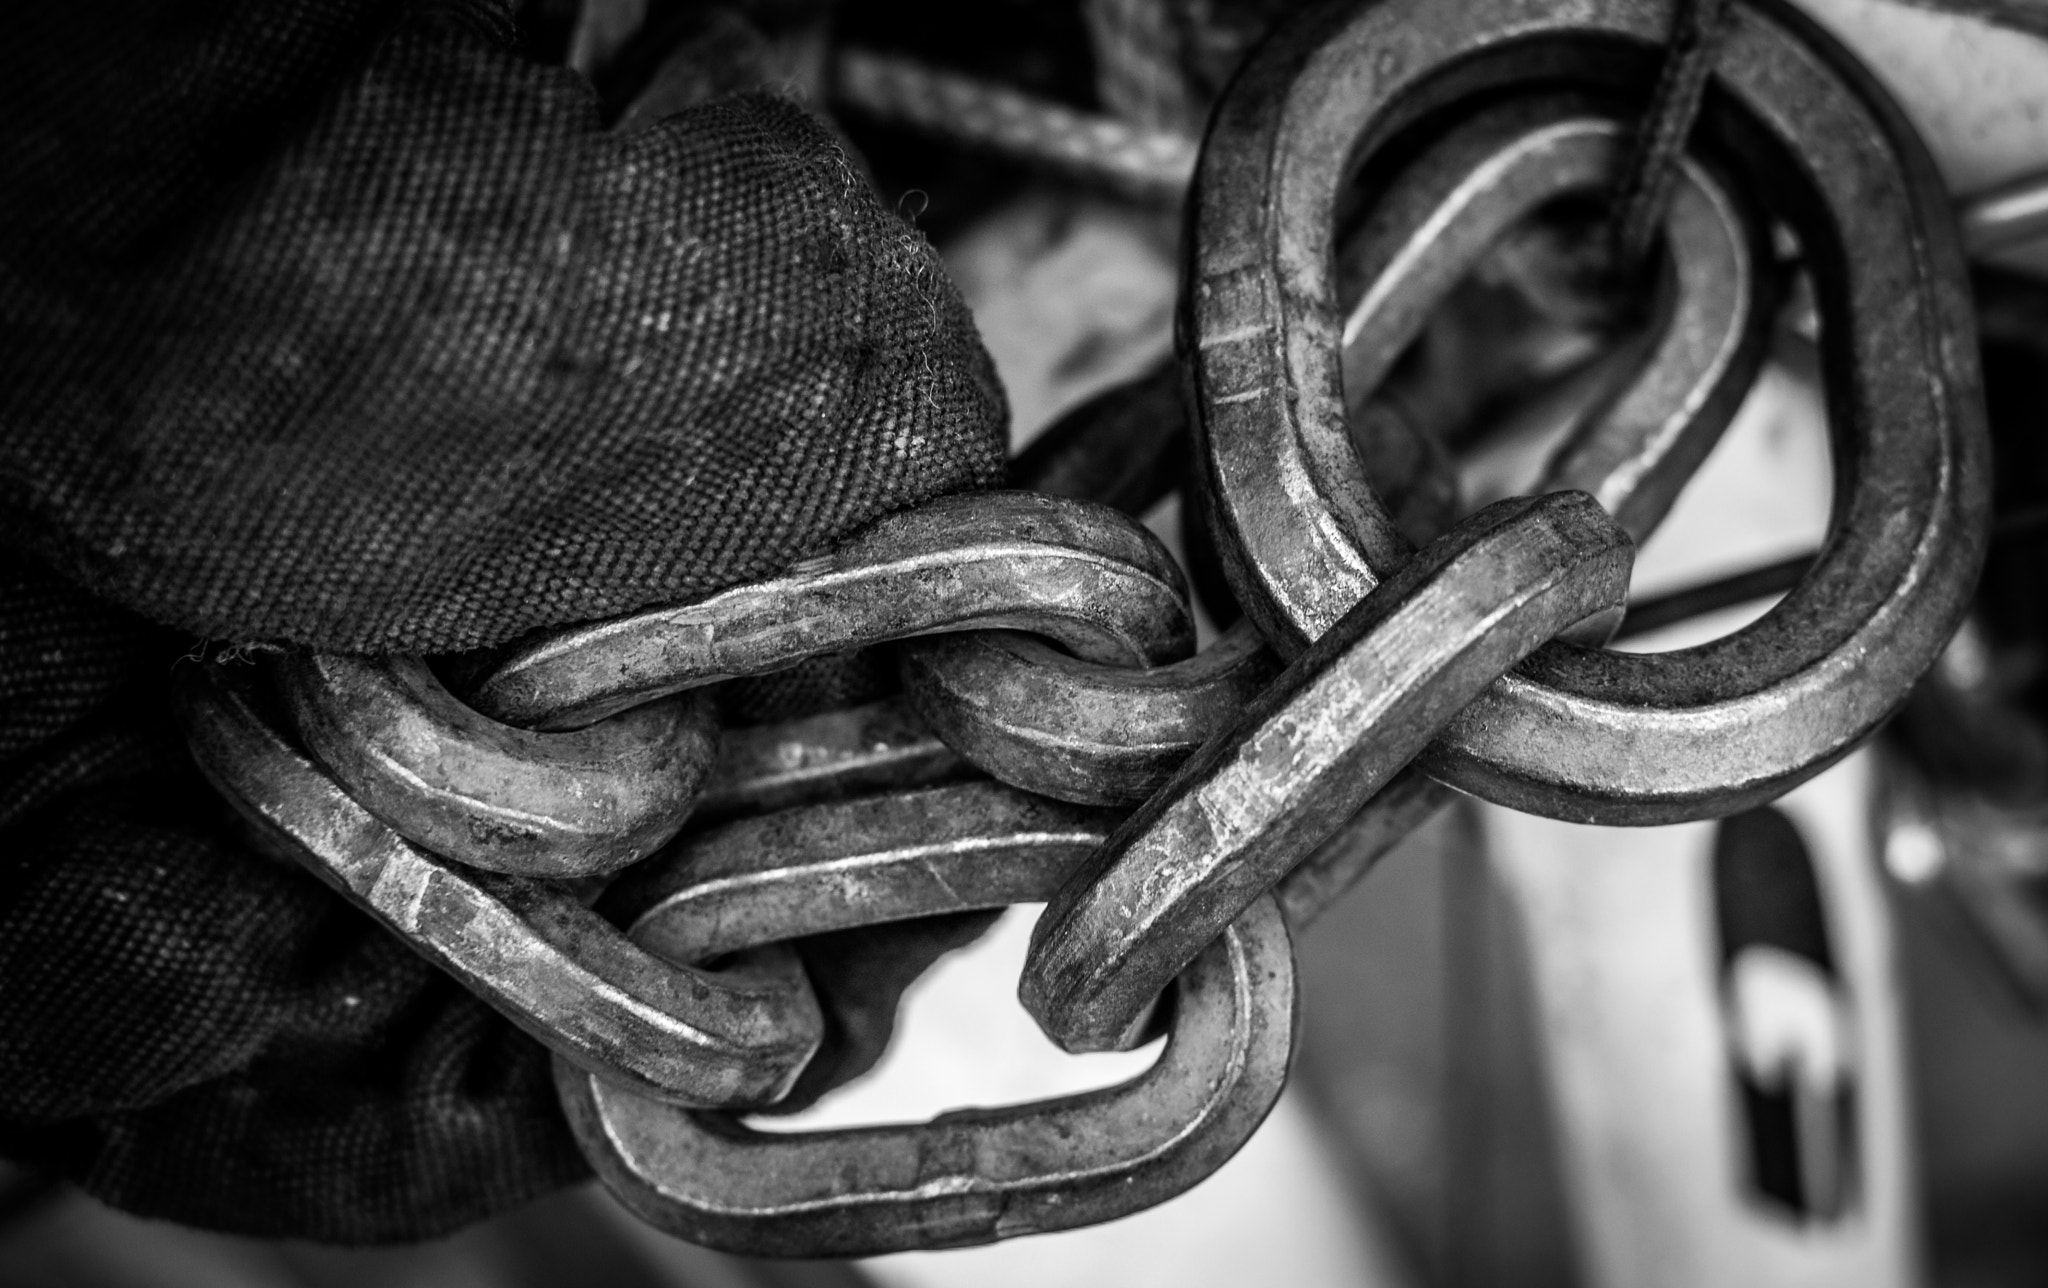 Photograph Chains by Abe Dakin on 500px